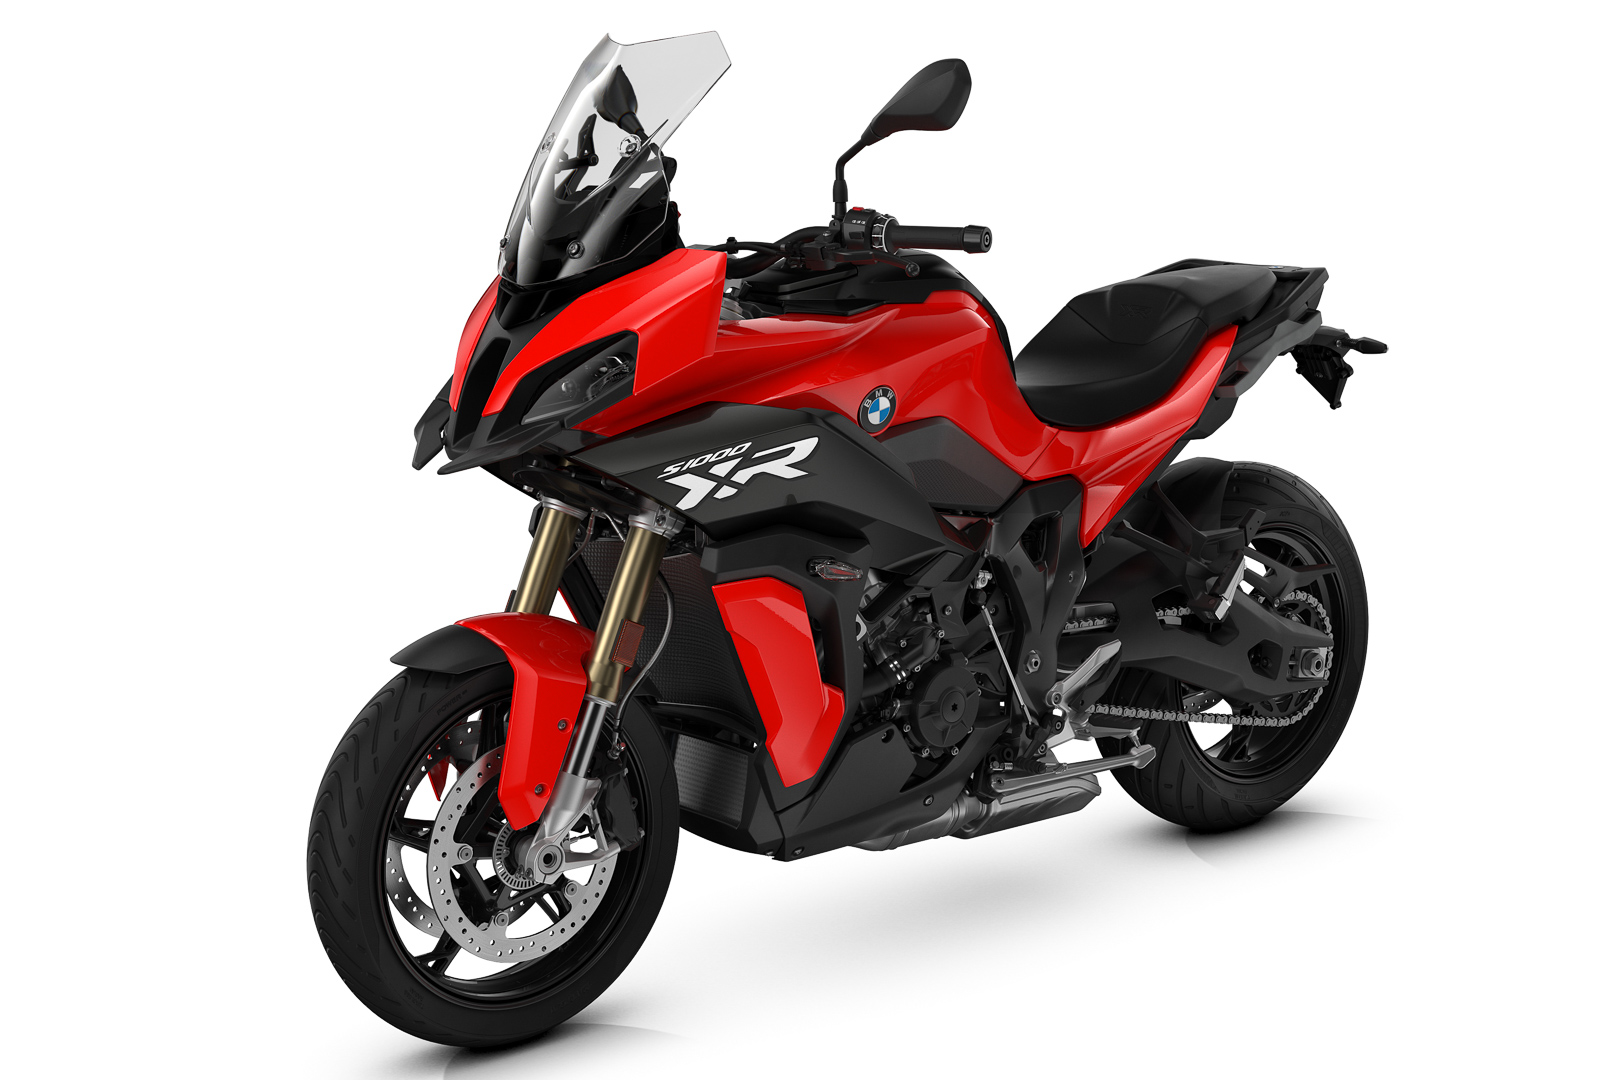 2022 BMW S 1000 XR First Look: Price